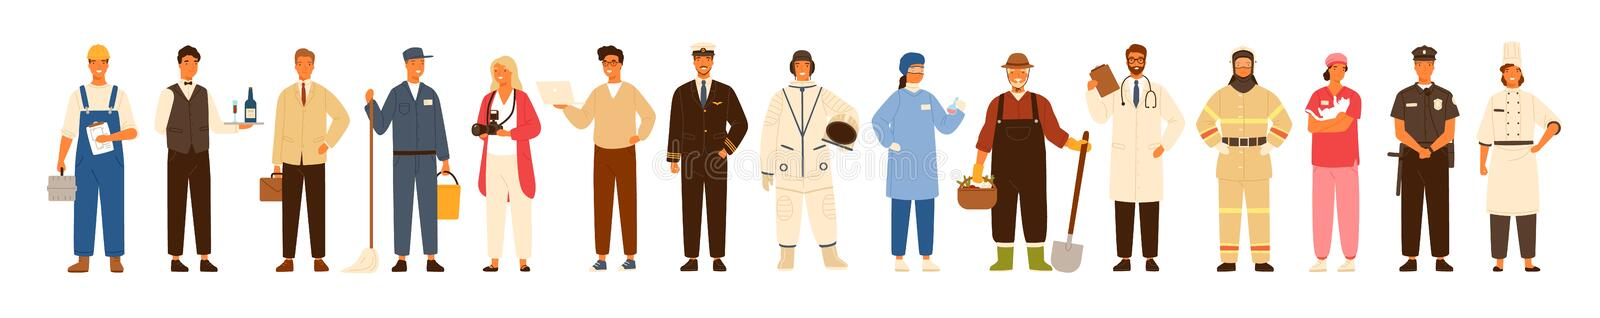 Collection of men and women of various occupations or profession wearing professional uniform - construction worker vector illustration